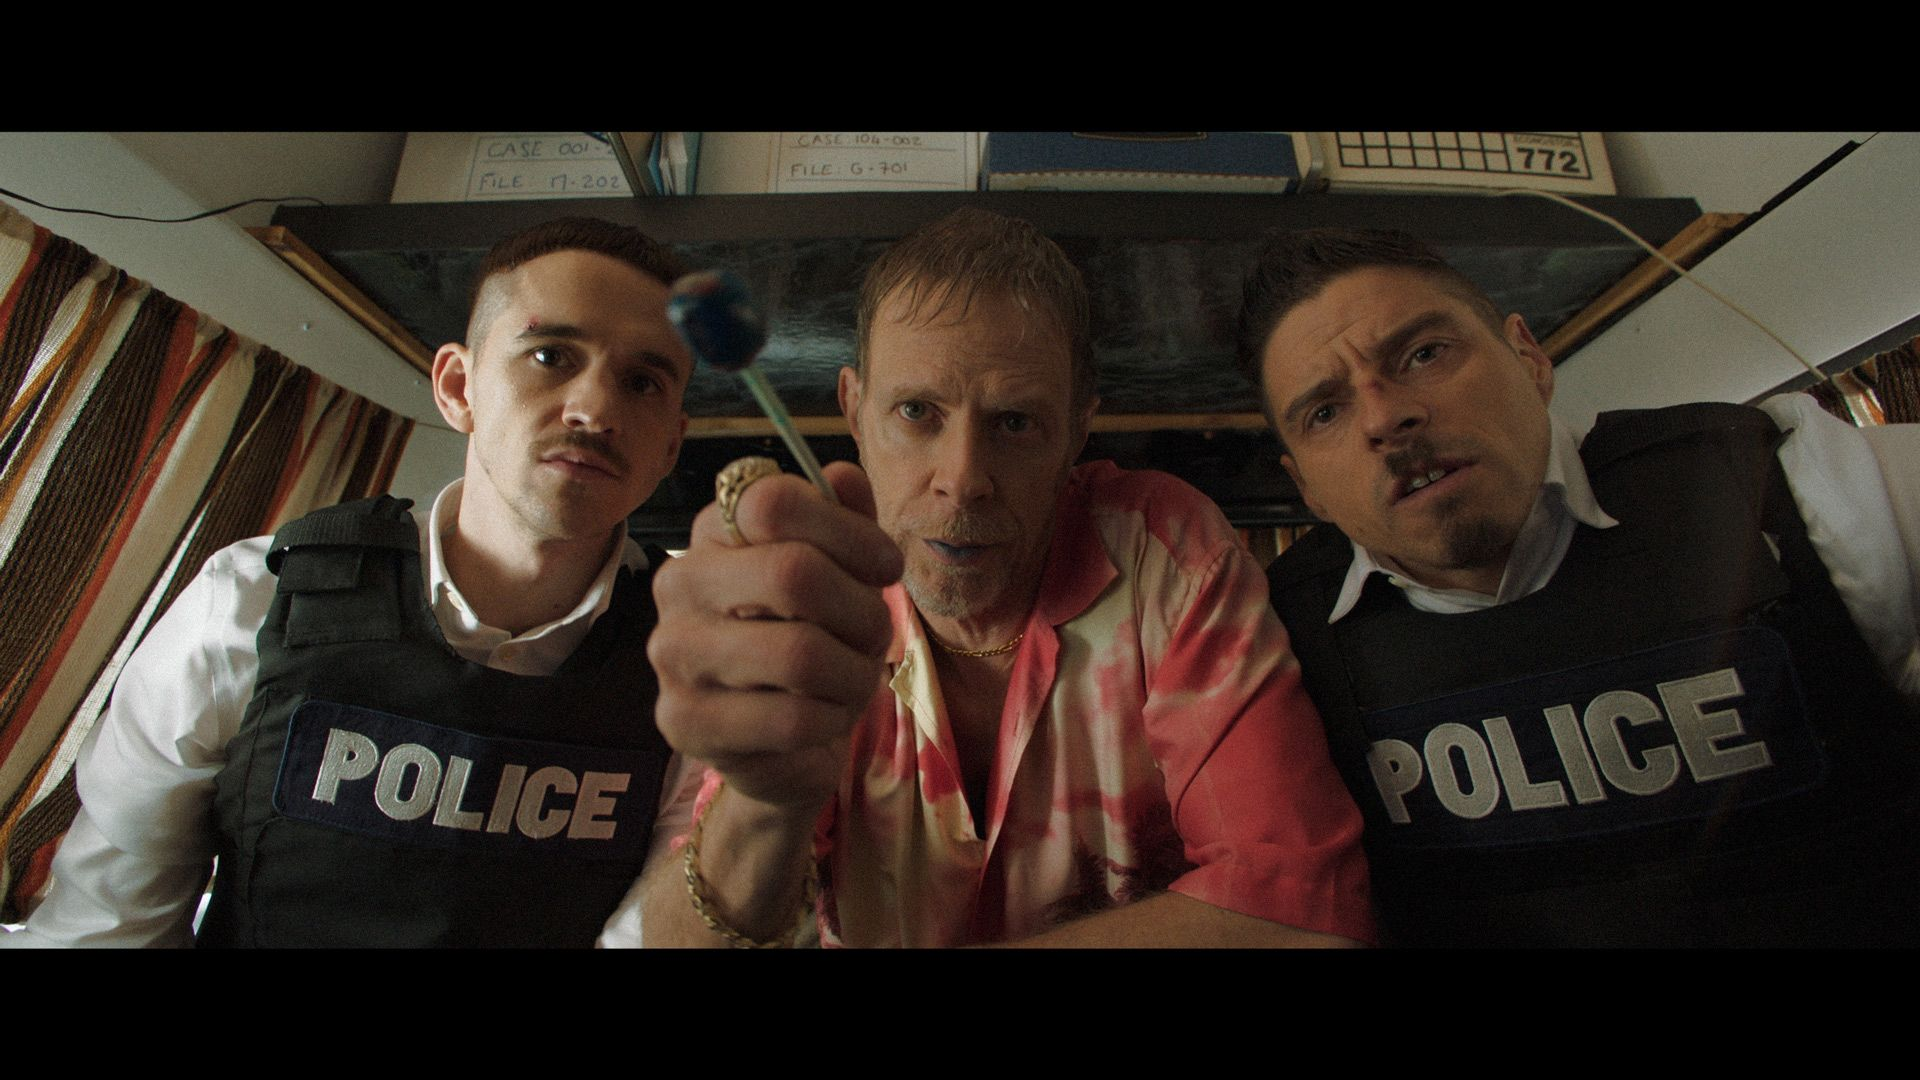 actors Hugolin Chevrette-Landesque and Emile Schneider posing as cops on each side of a man in tie-dye shirt holding a blue lollipop with blue lips looking at camera for TV series La Loi C'est La Loi filmed by Les Gamins for TV5 Unis